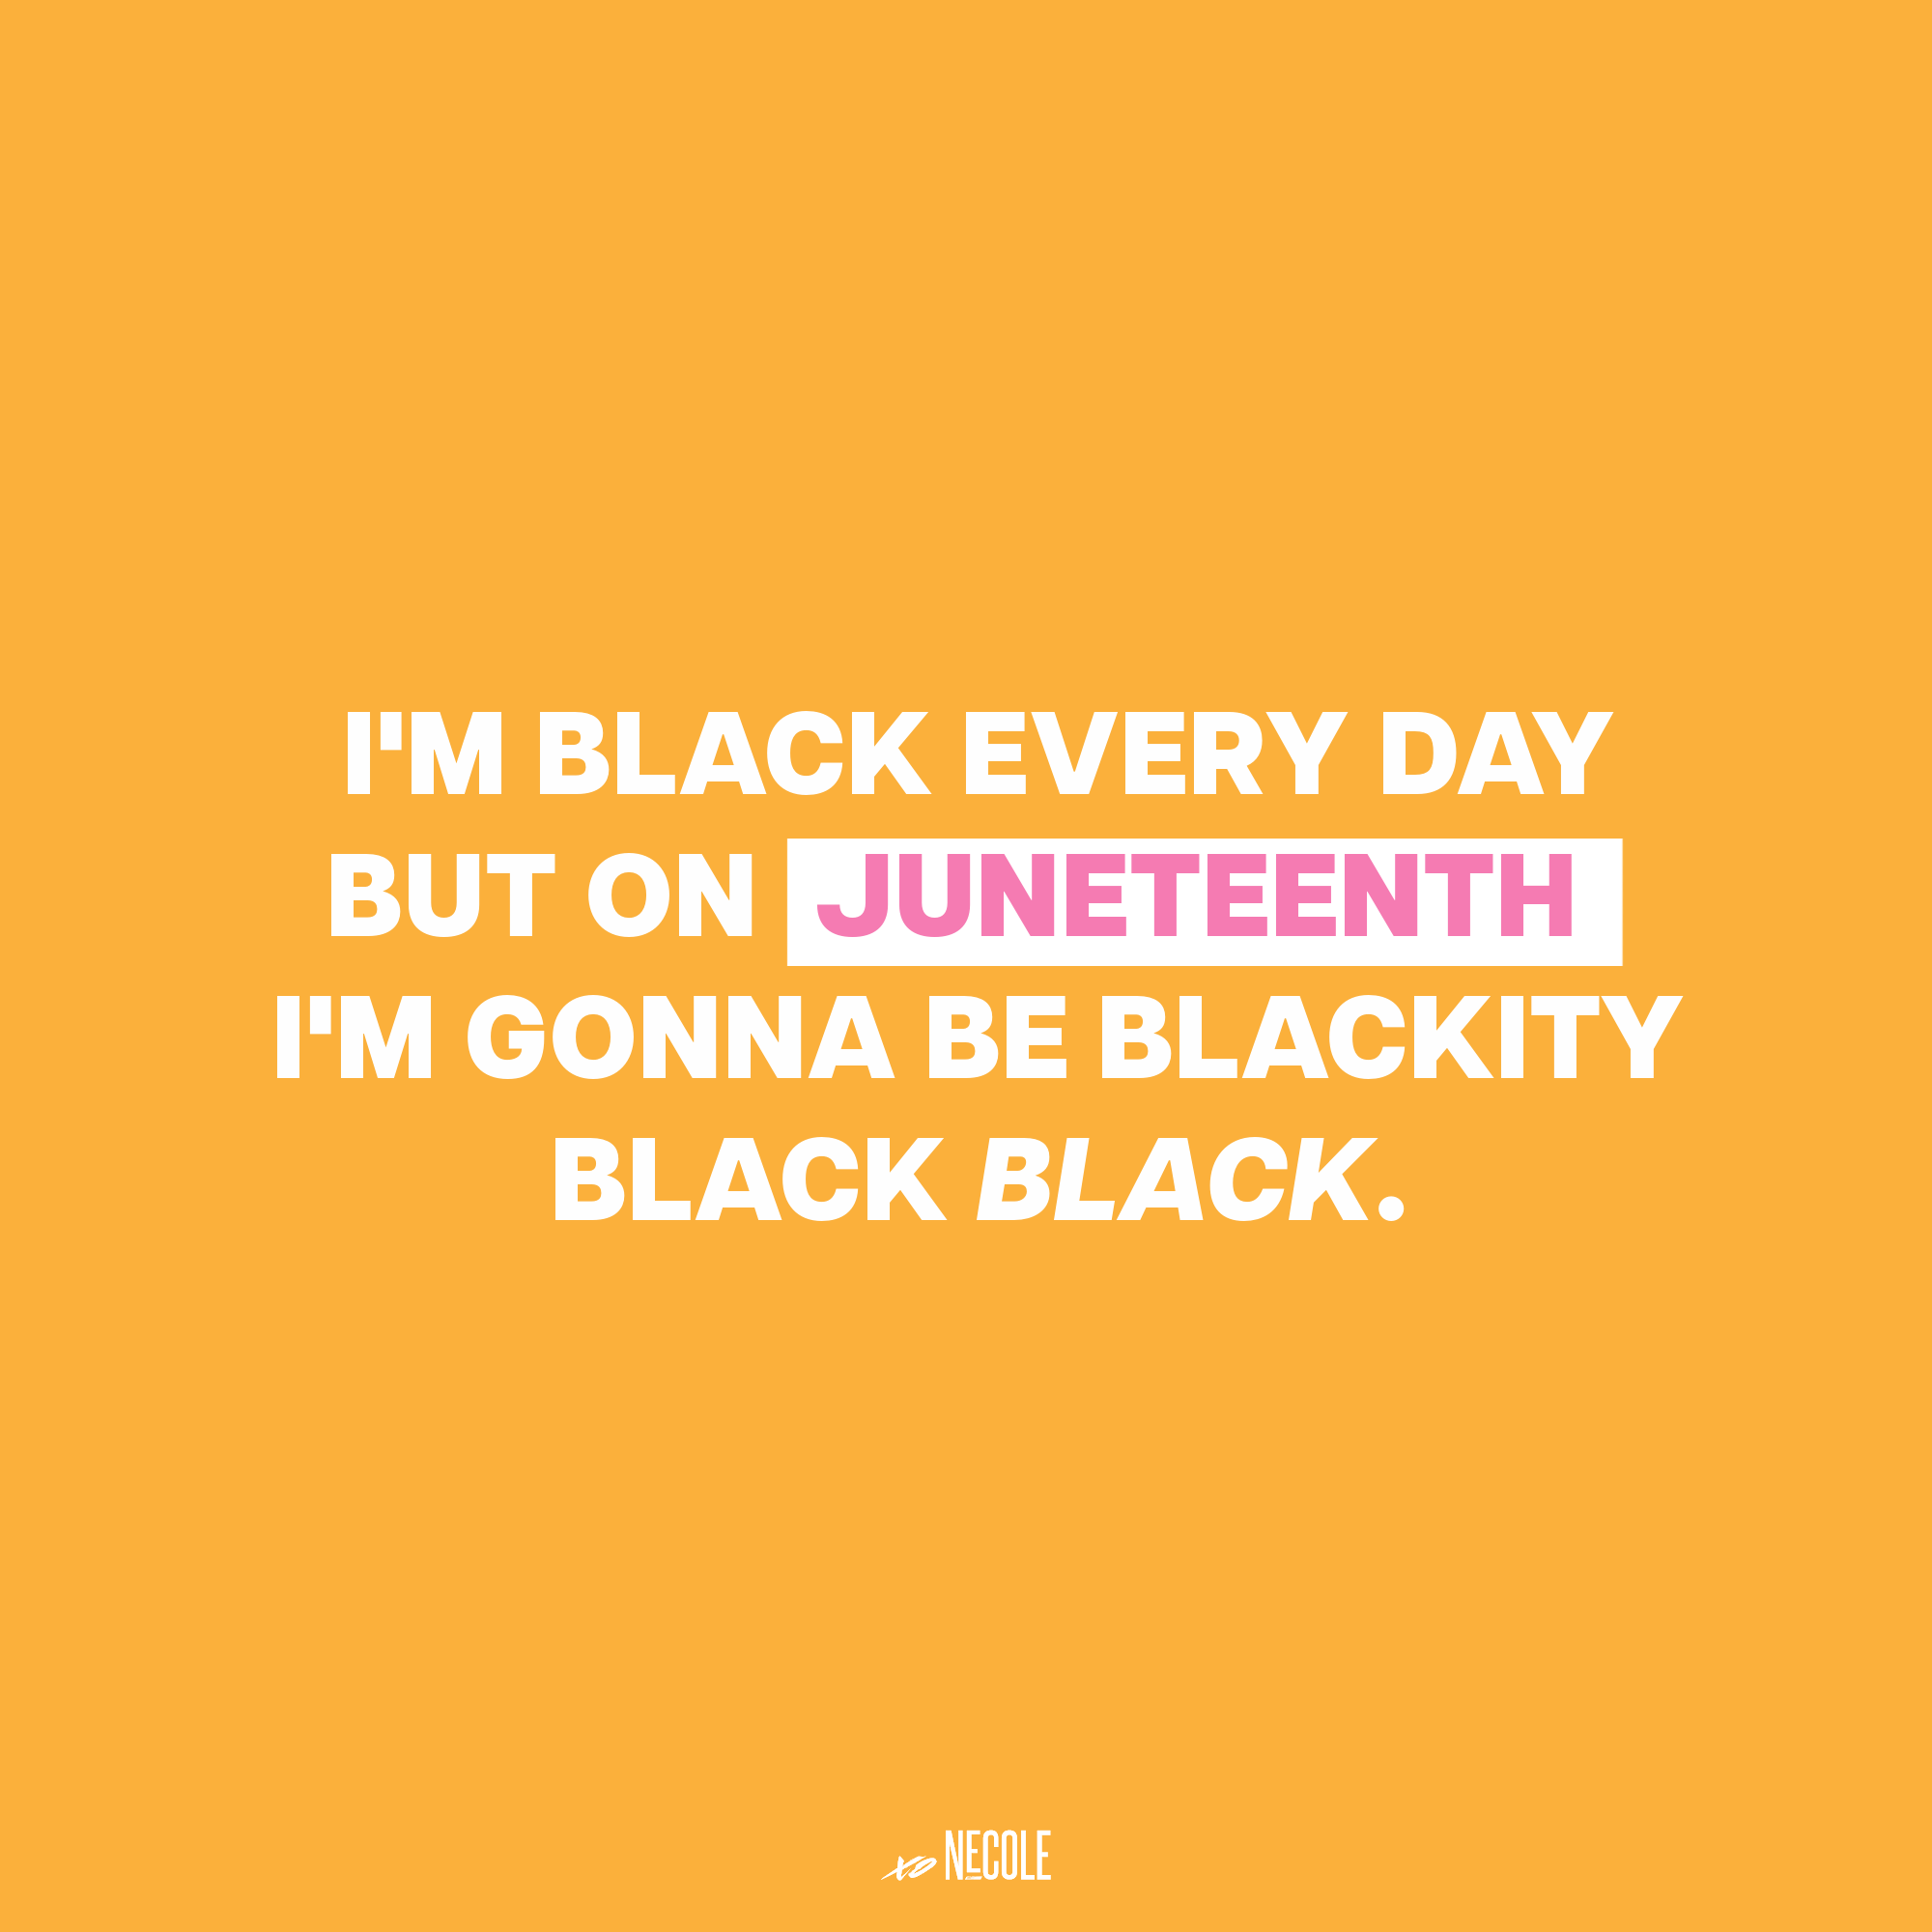 I'm black every day but on Juneteenth I'm gonna be blackity black black.